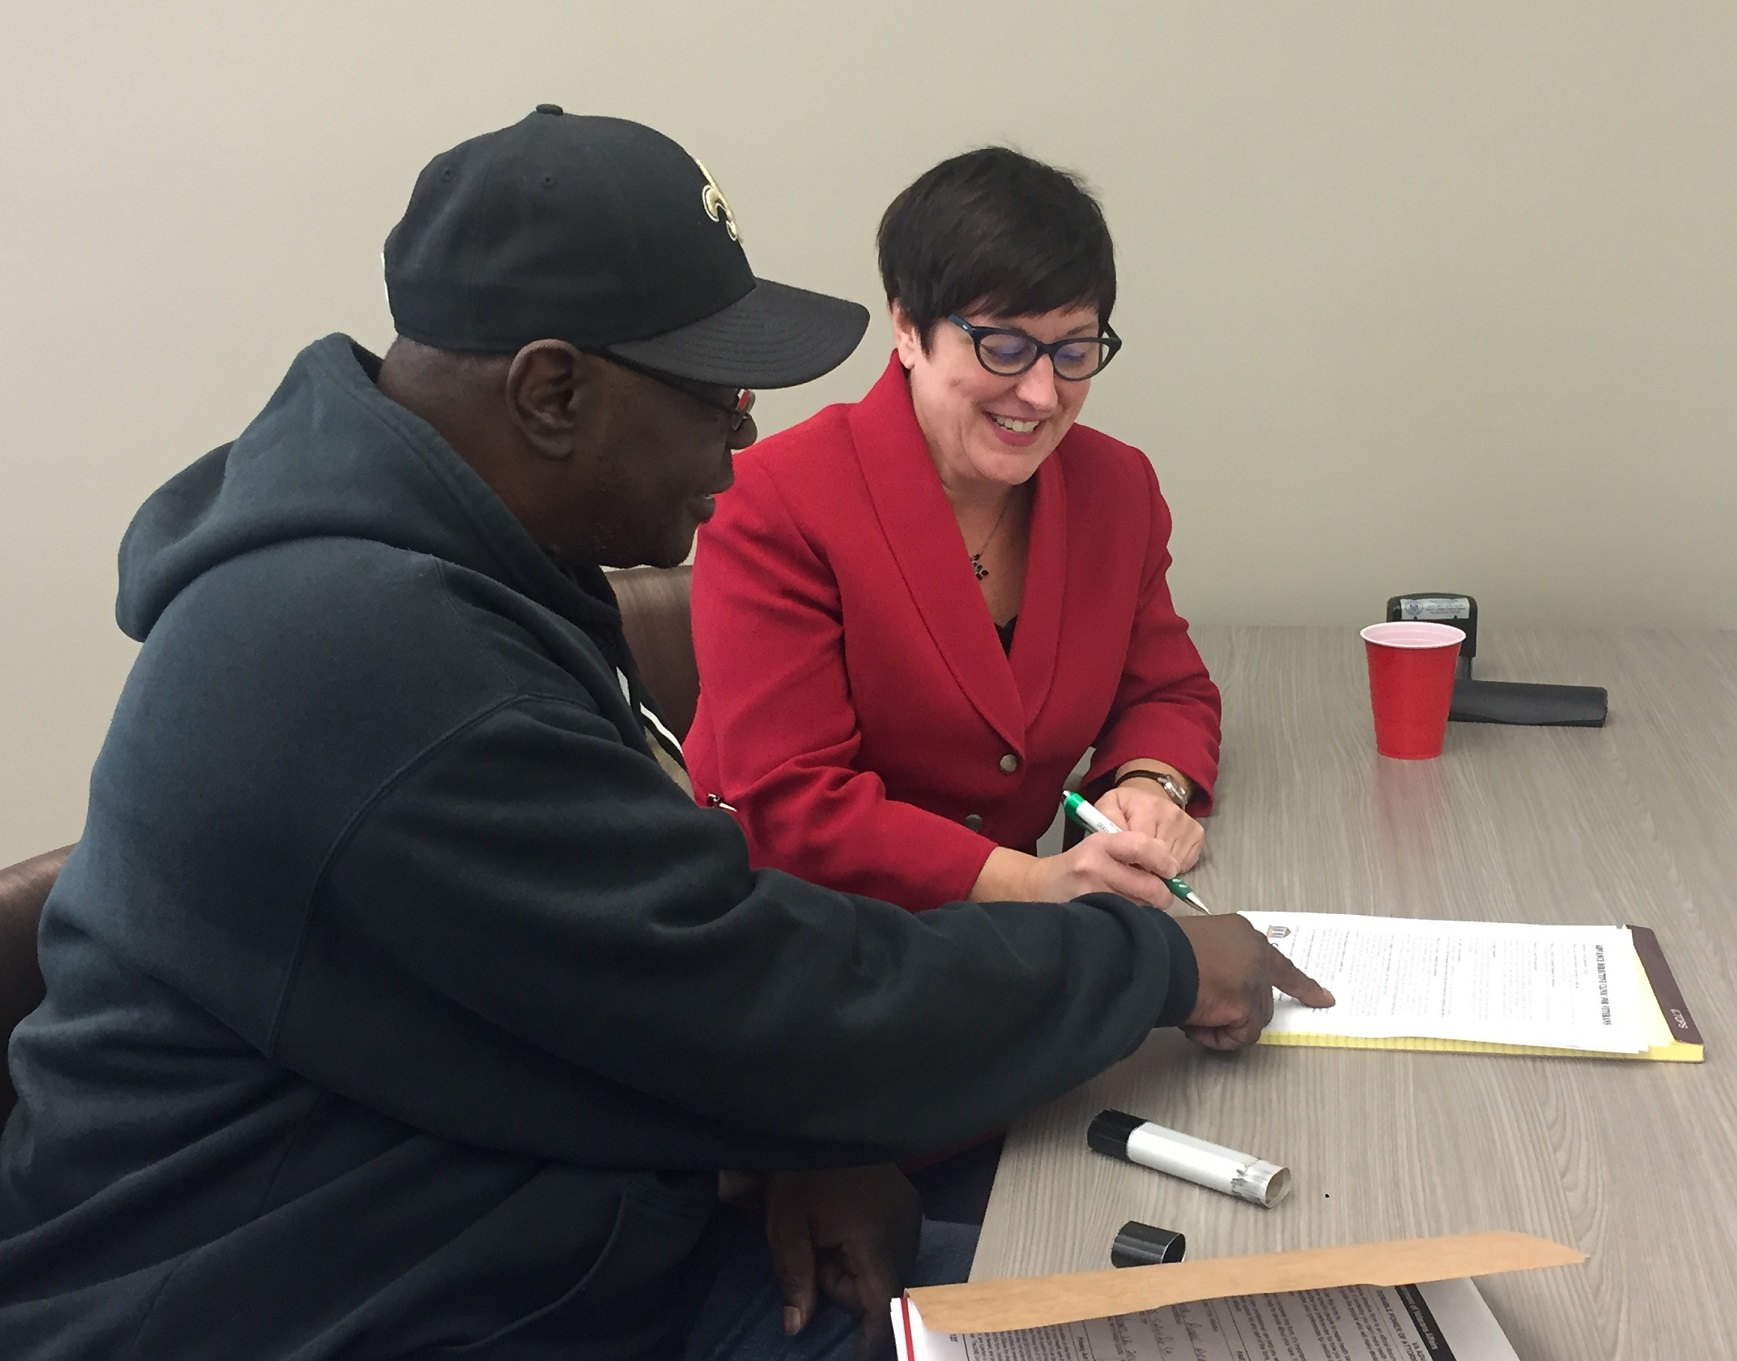 Rebecca Schiller, Volunteer Attorney, helping out a veteran in need